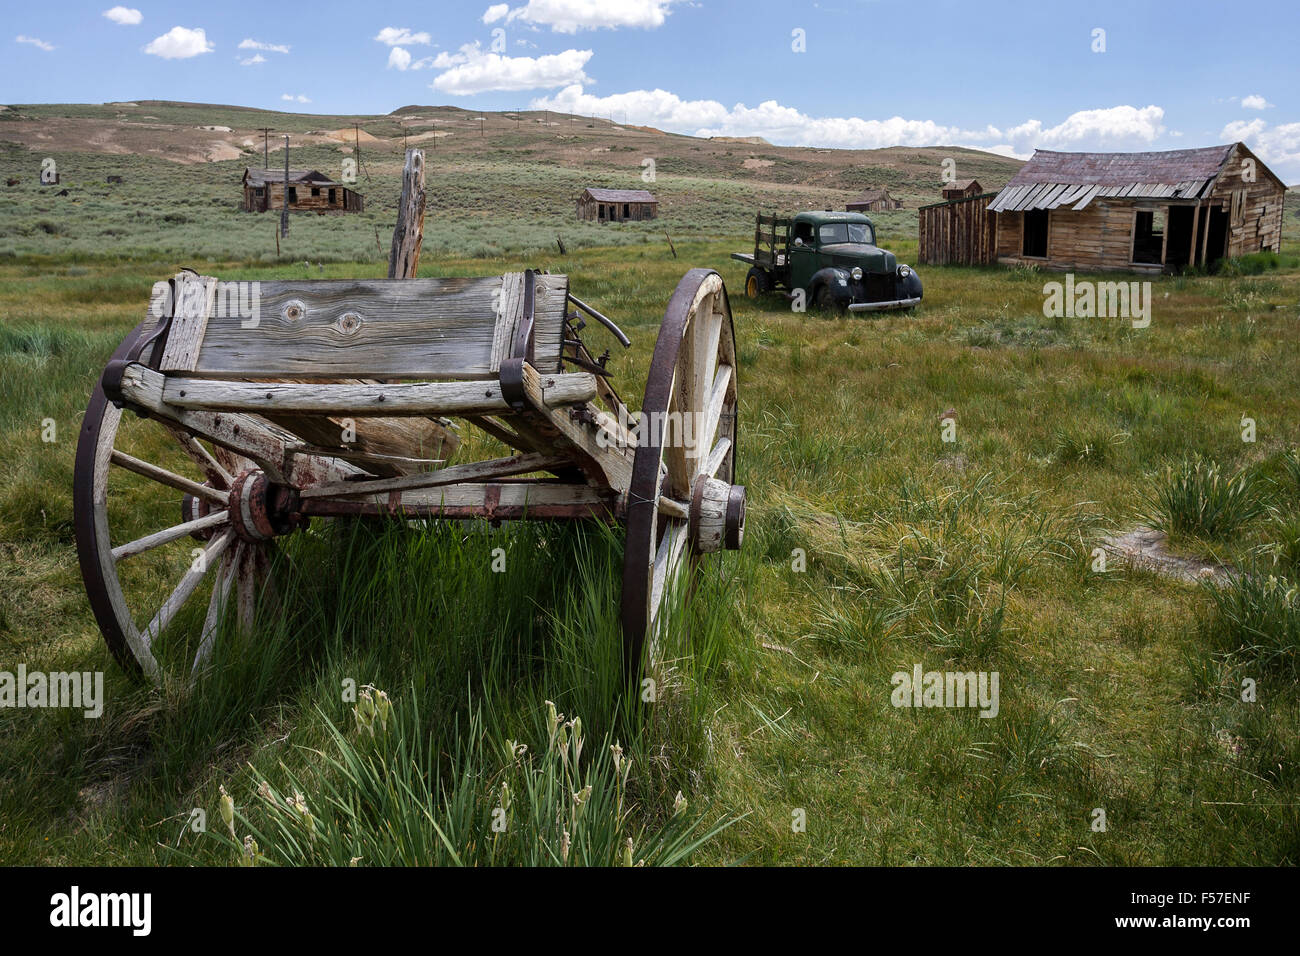 Old wooden cart, vintage car built in the 30s, old wooden houses, ghost town, old gold mining town, Bodie State - Stock Image